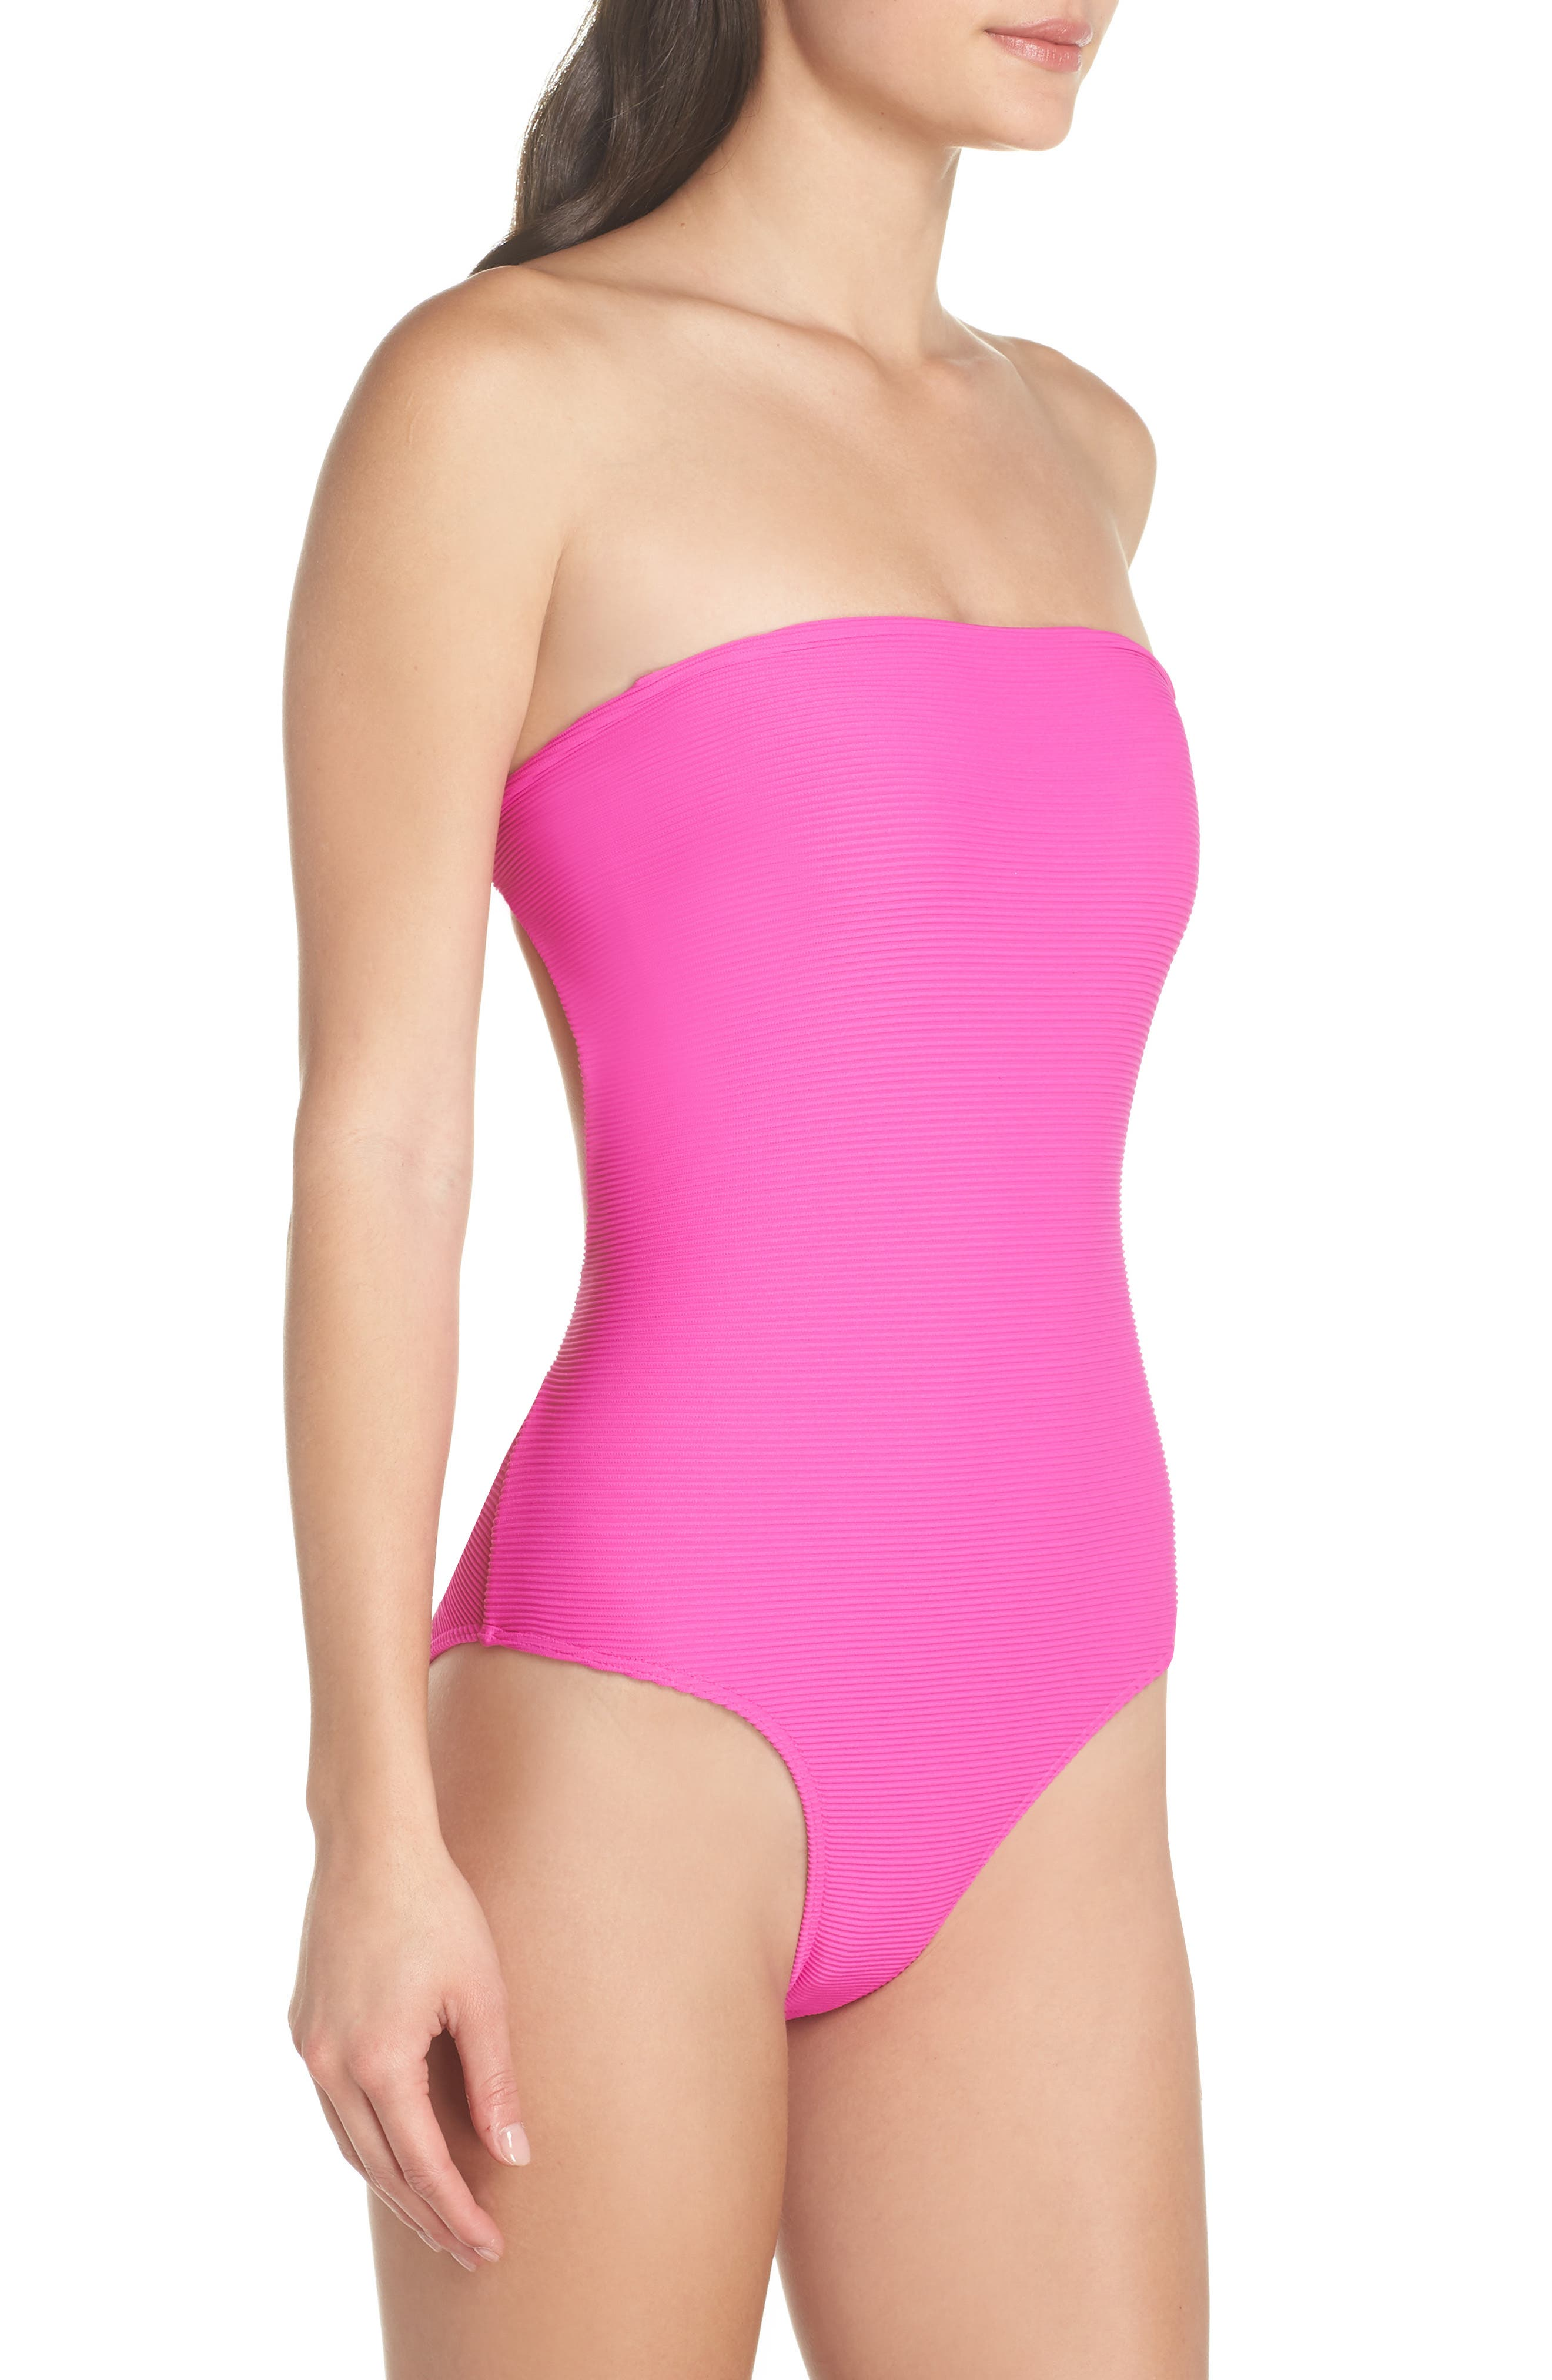 Tanlines Strapless One-Piece Swimsuit,                             Alternate thumbnail 3, color,                             685